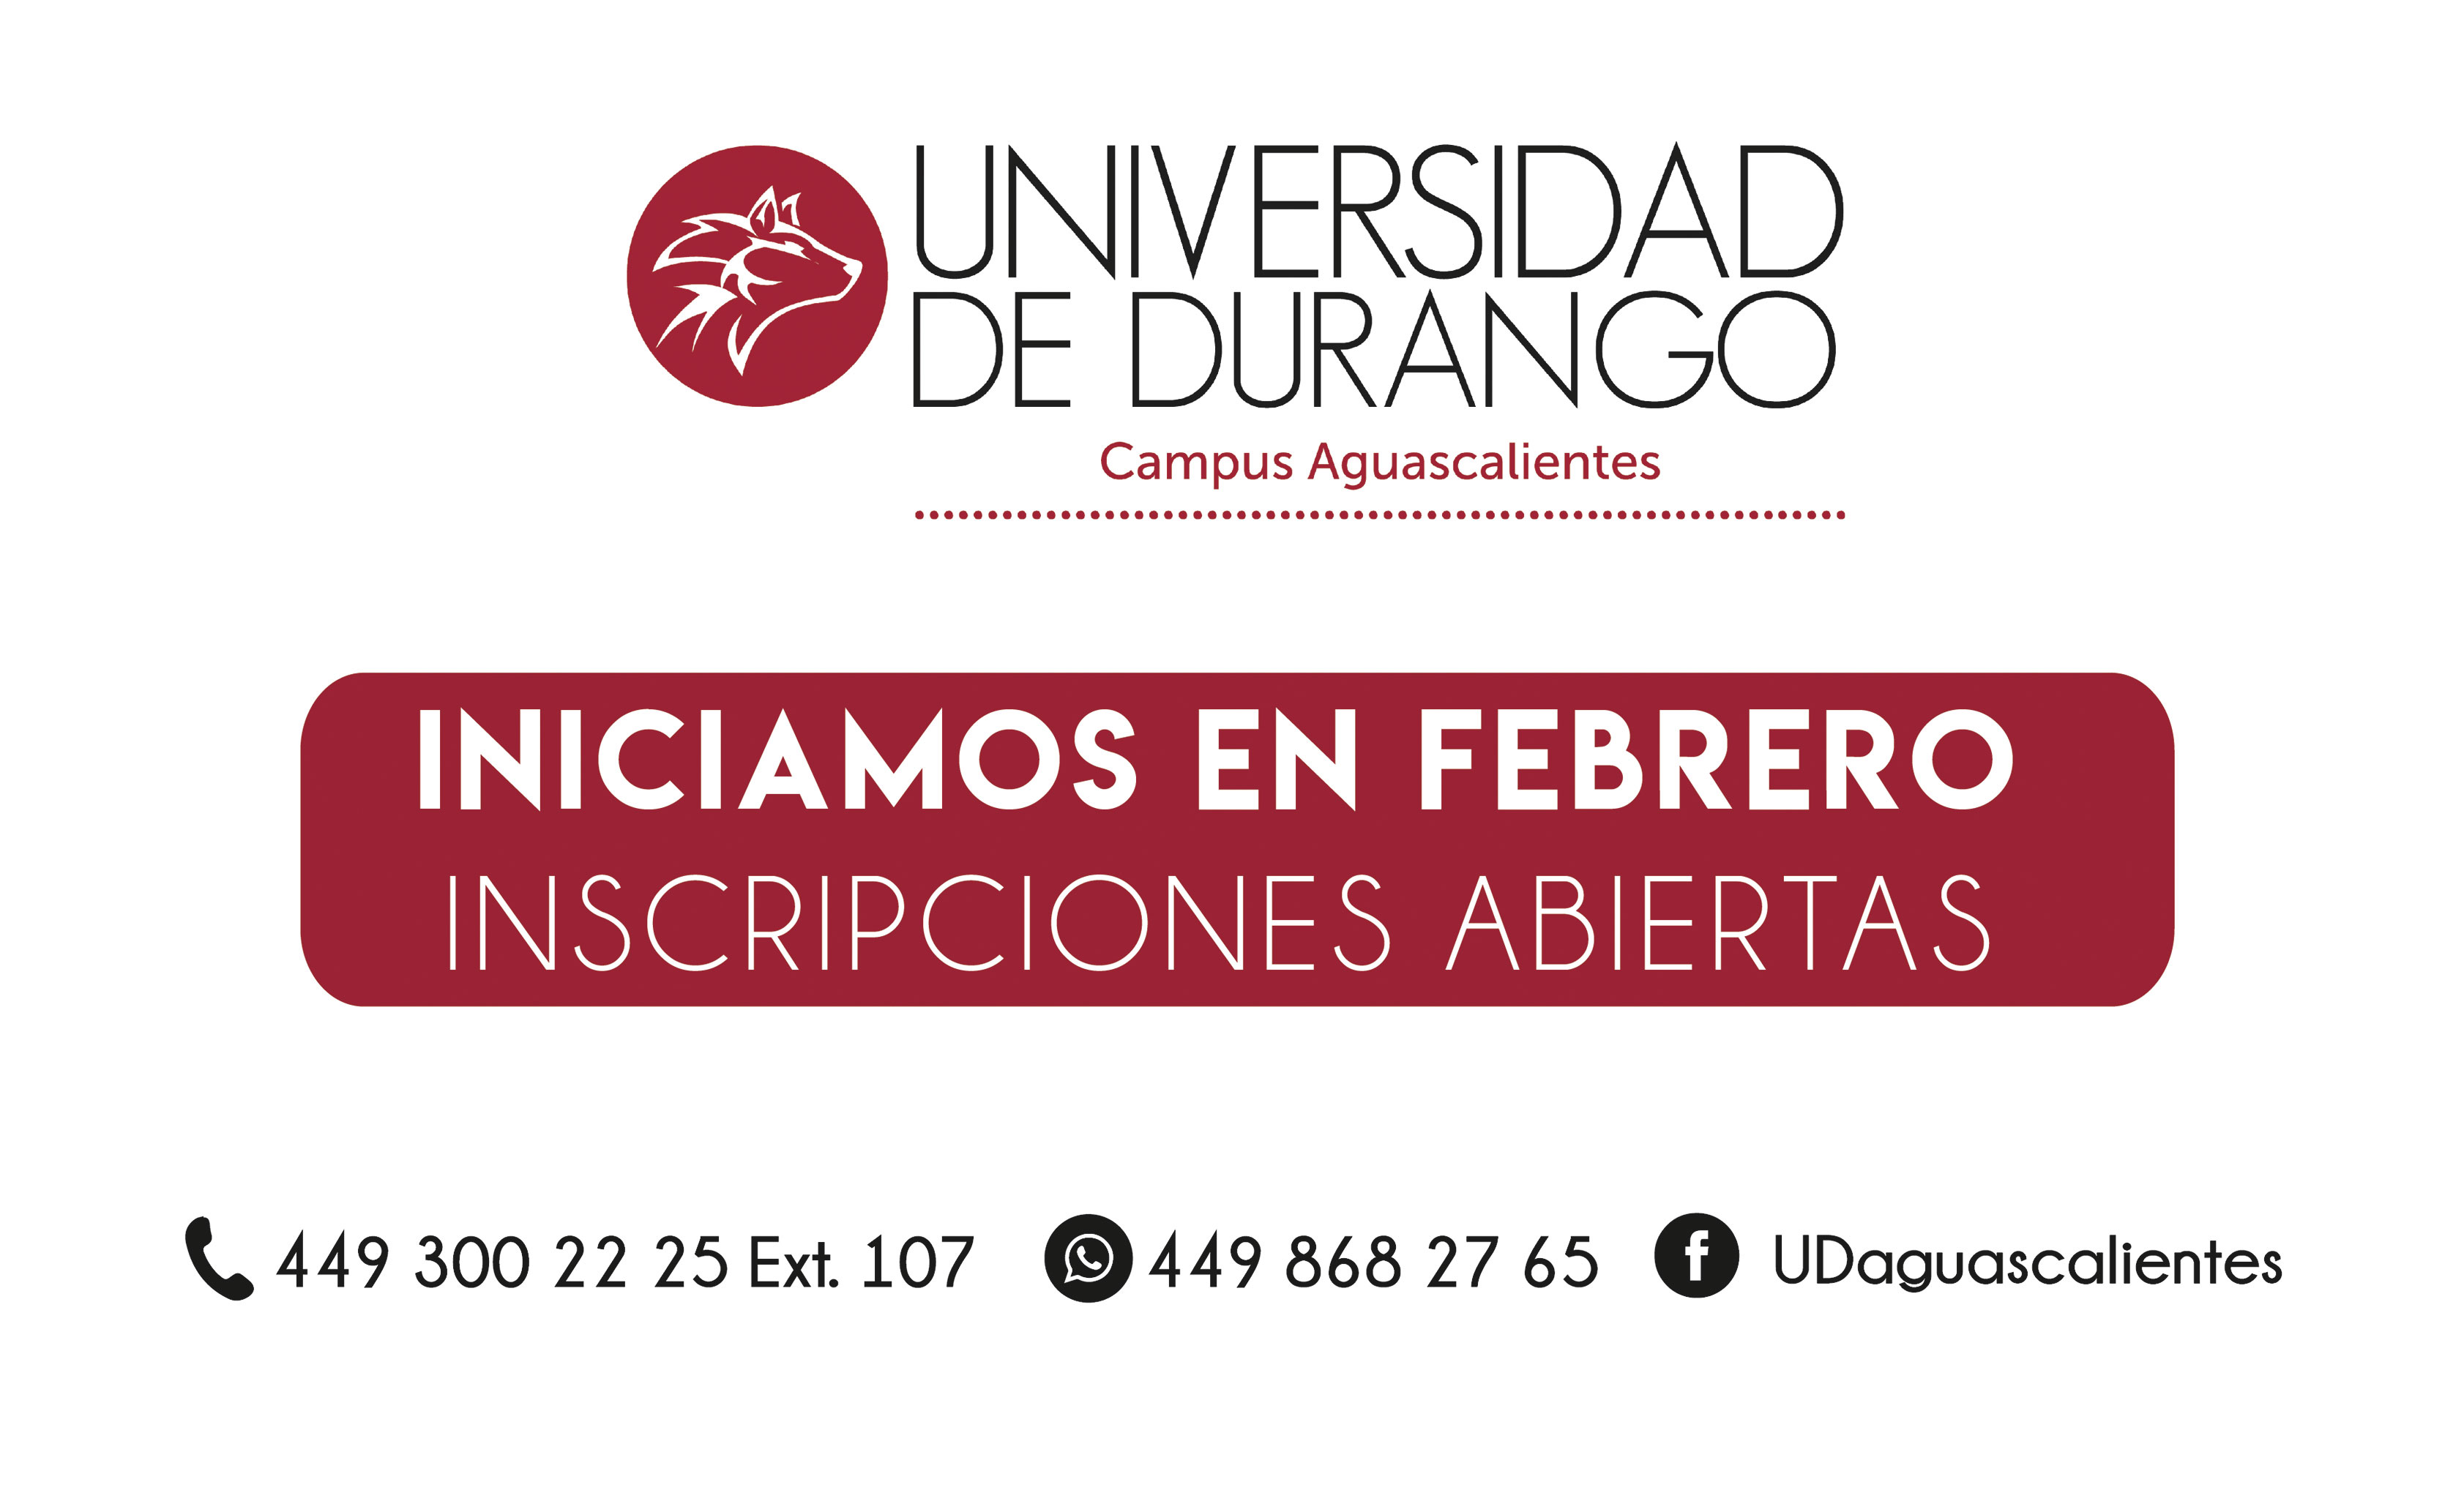 UNIVERSIDAD-DE-DURANGO